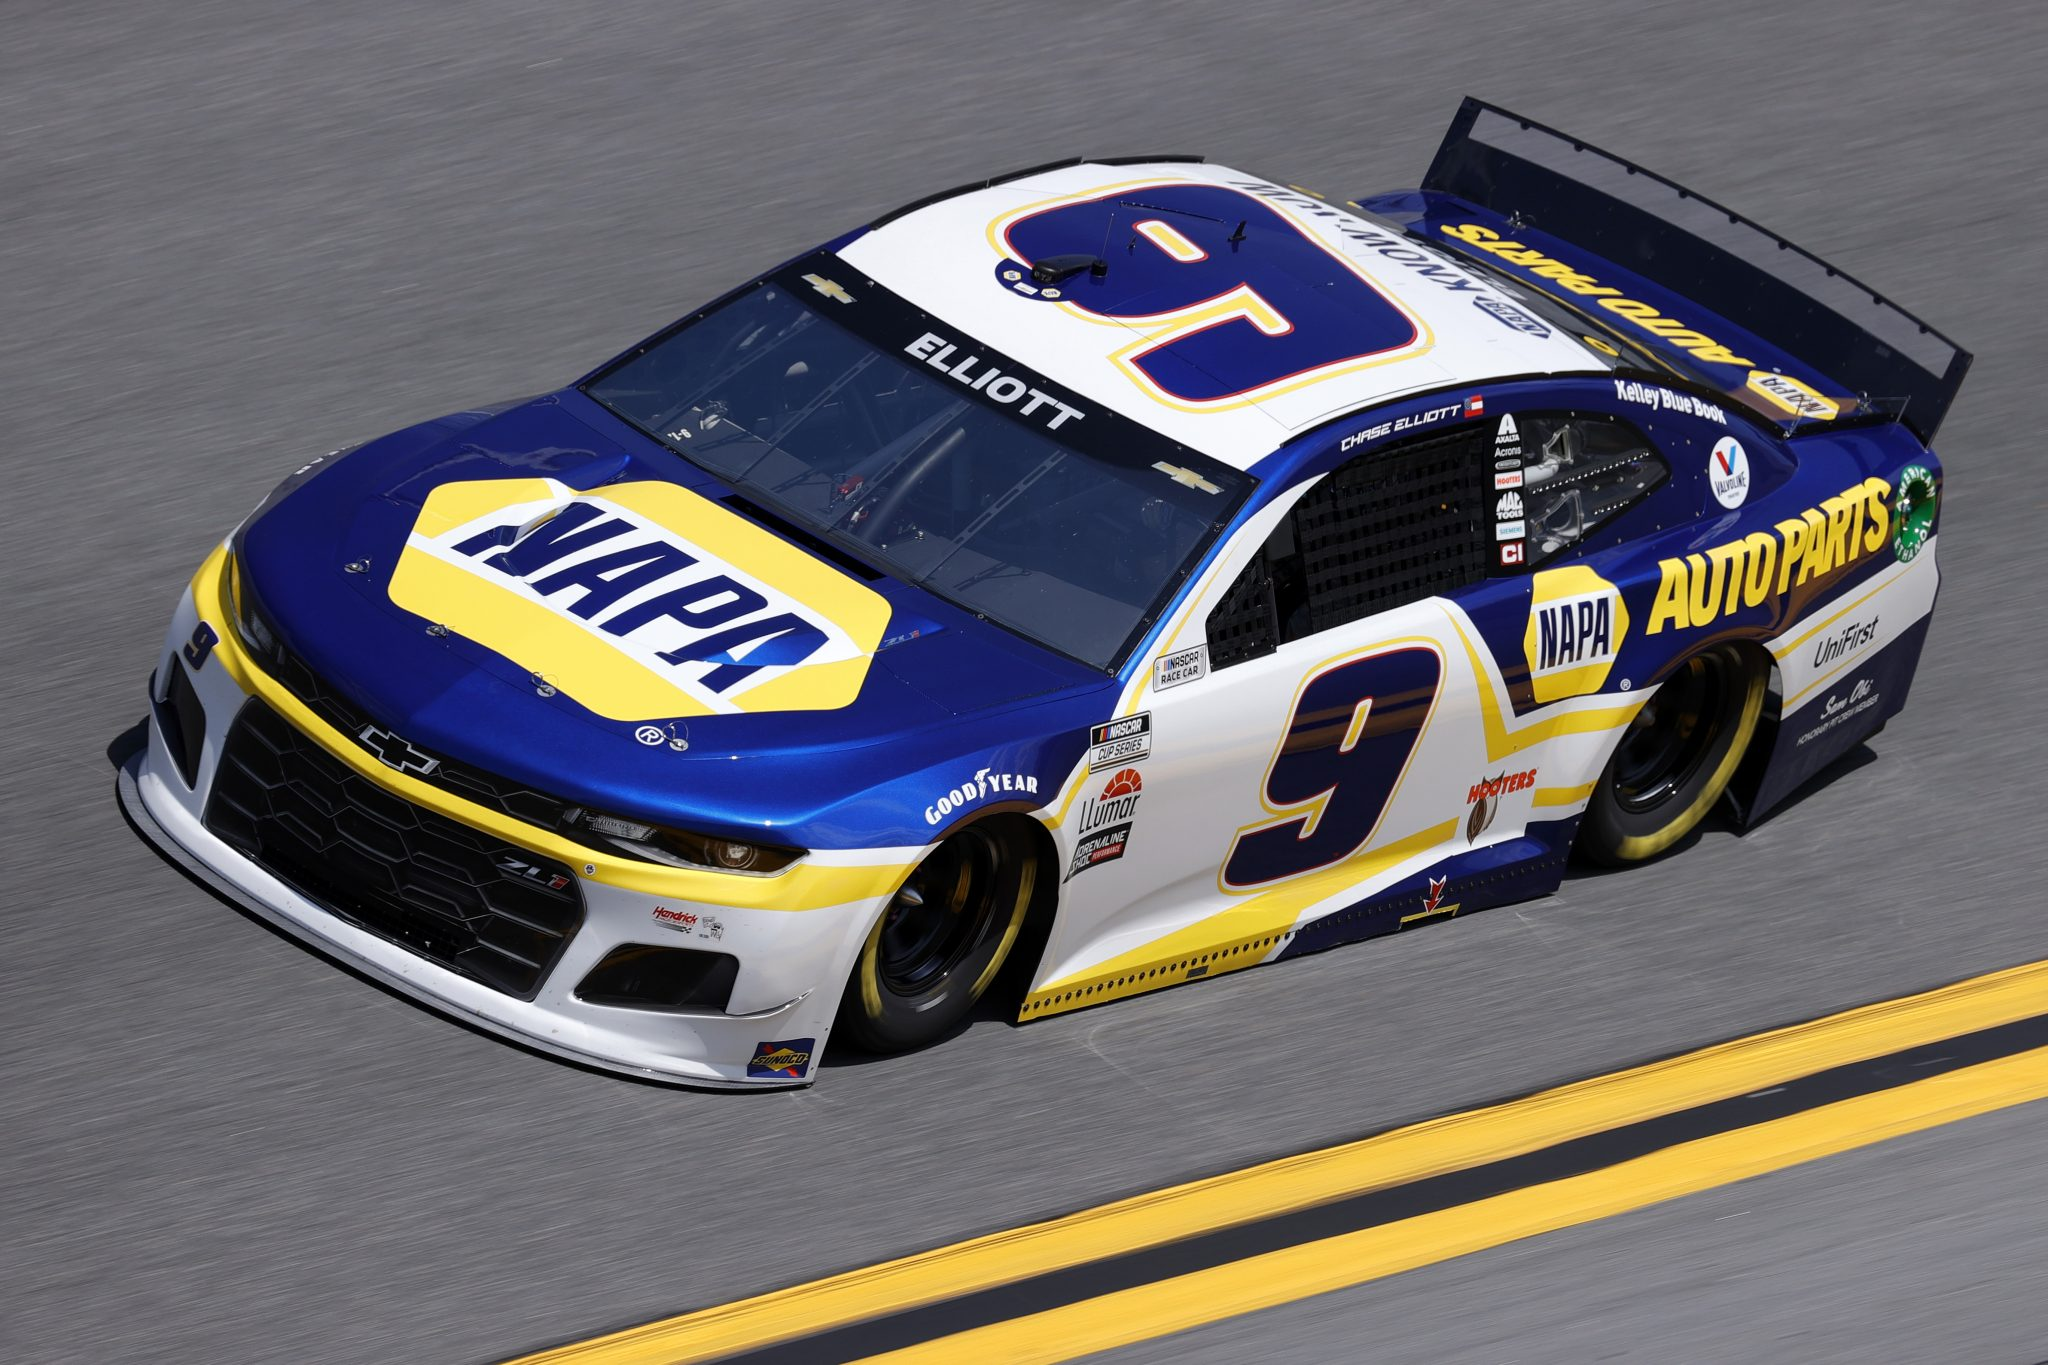 DAYTONA BEACH, FLORIDA - FEBRUARY 10: Chase Elliott, driver of the #9 NAPA Auto Parts Chevrolet, drives during practice for the NASCAR Cup Series 63rd Annual Daytona 500 at Daytona International Speedway on February 10, 2021 in Daytona Beach, Florida. (Photo by Jared C. Tilton/Getty Images) | Getty Images